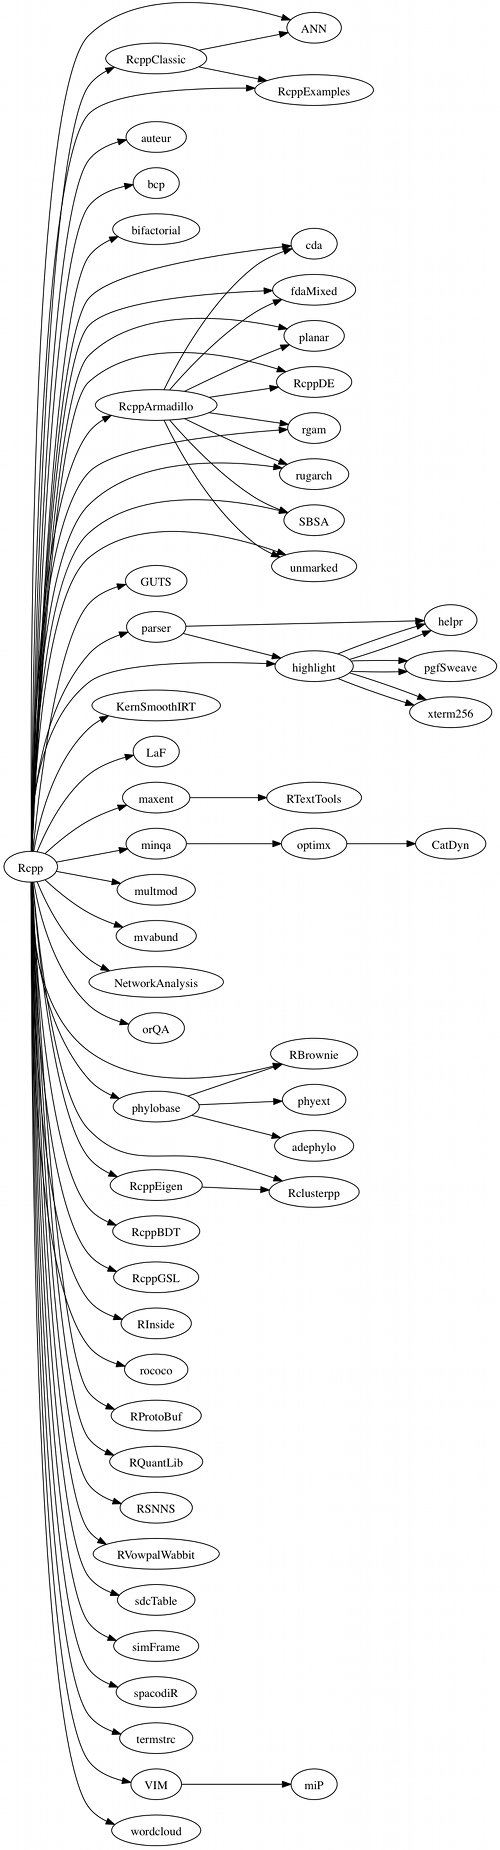 Rcpp reverse dependency graph